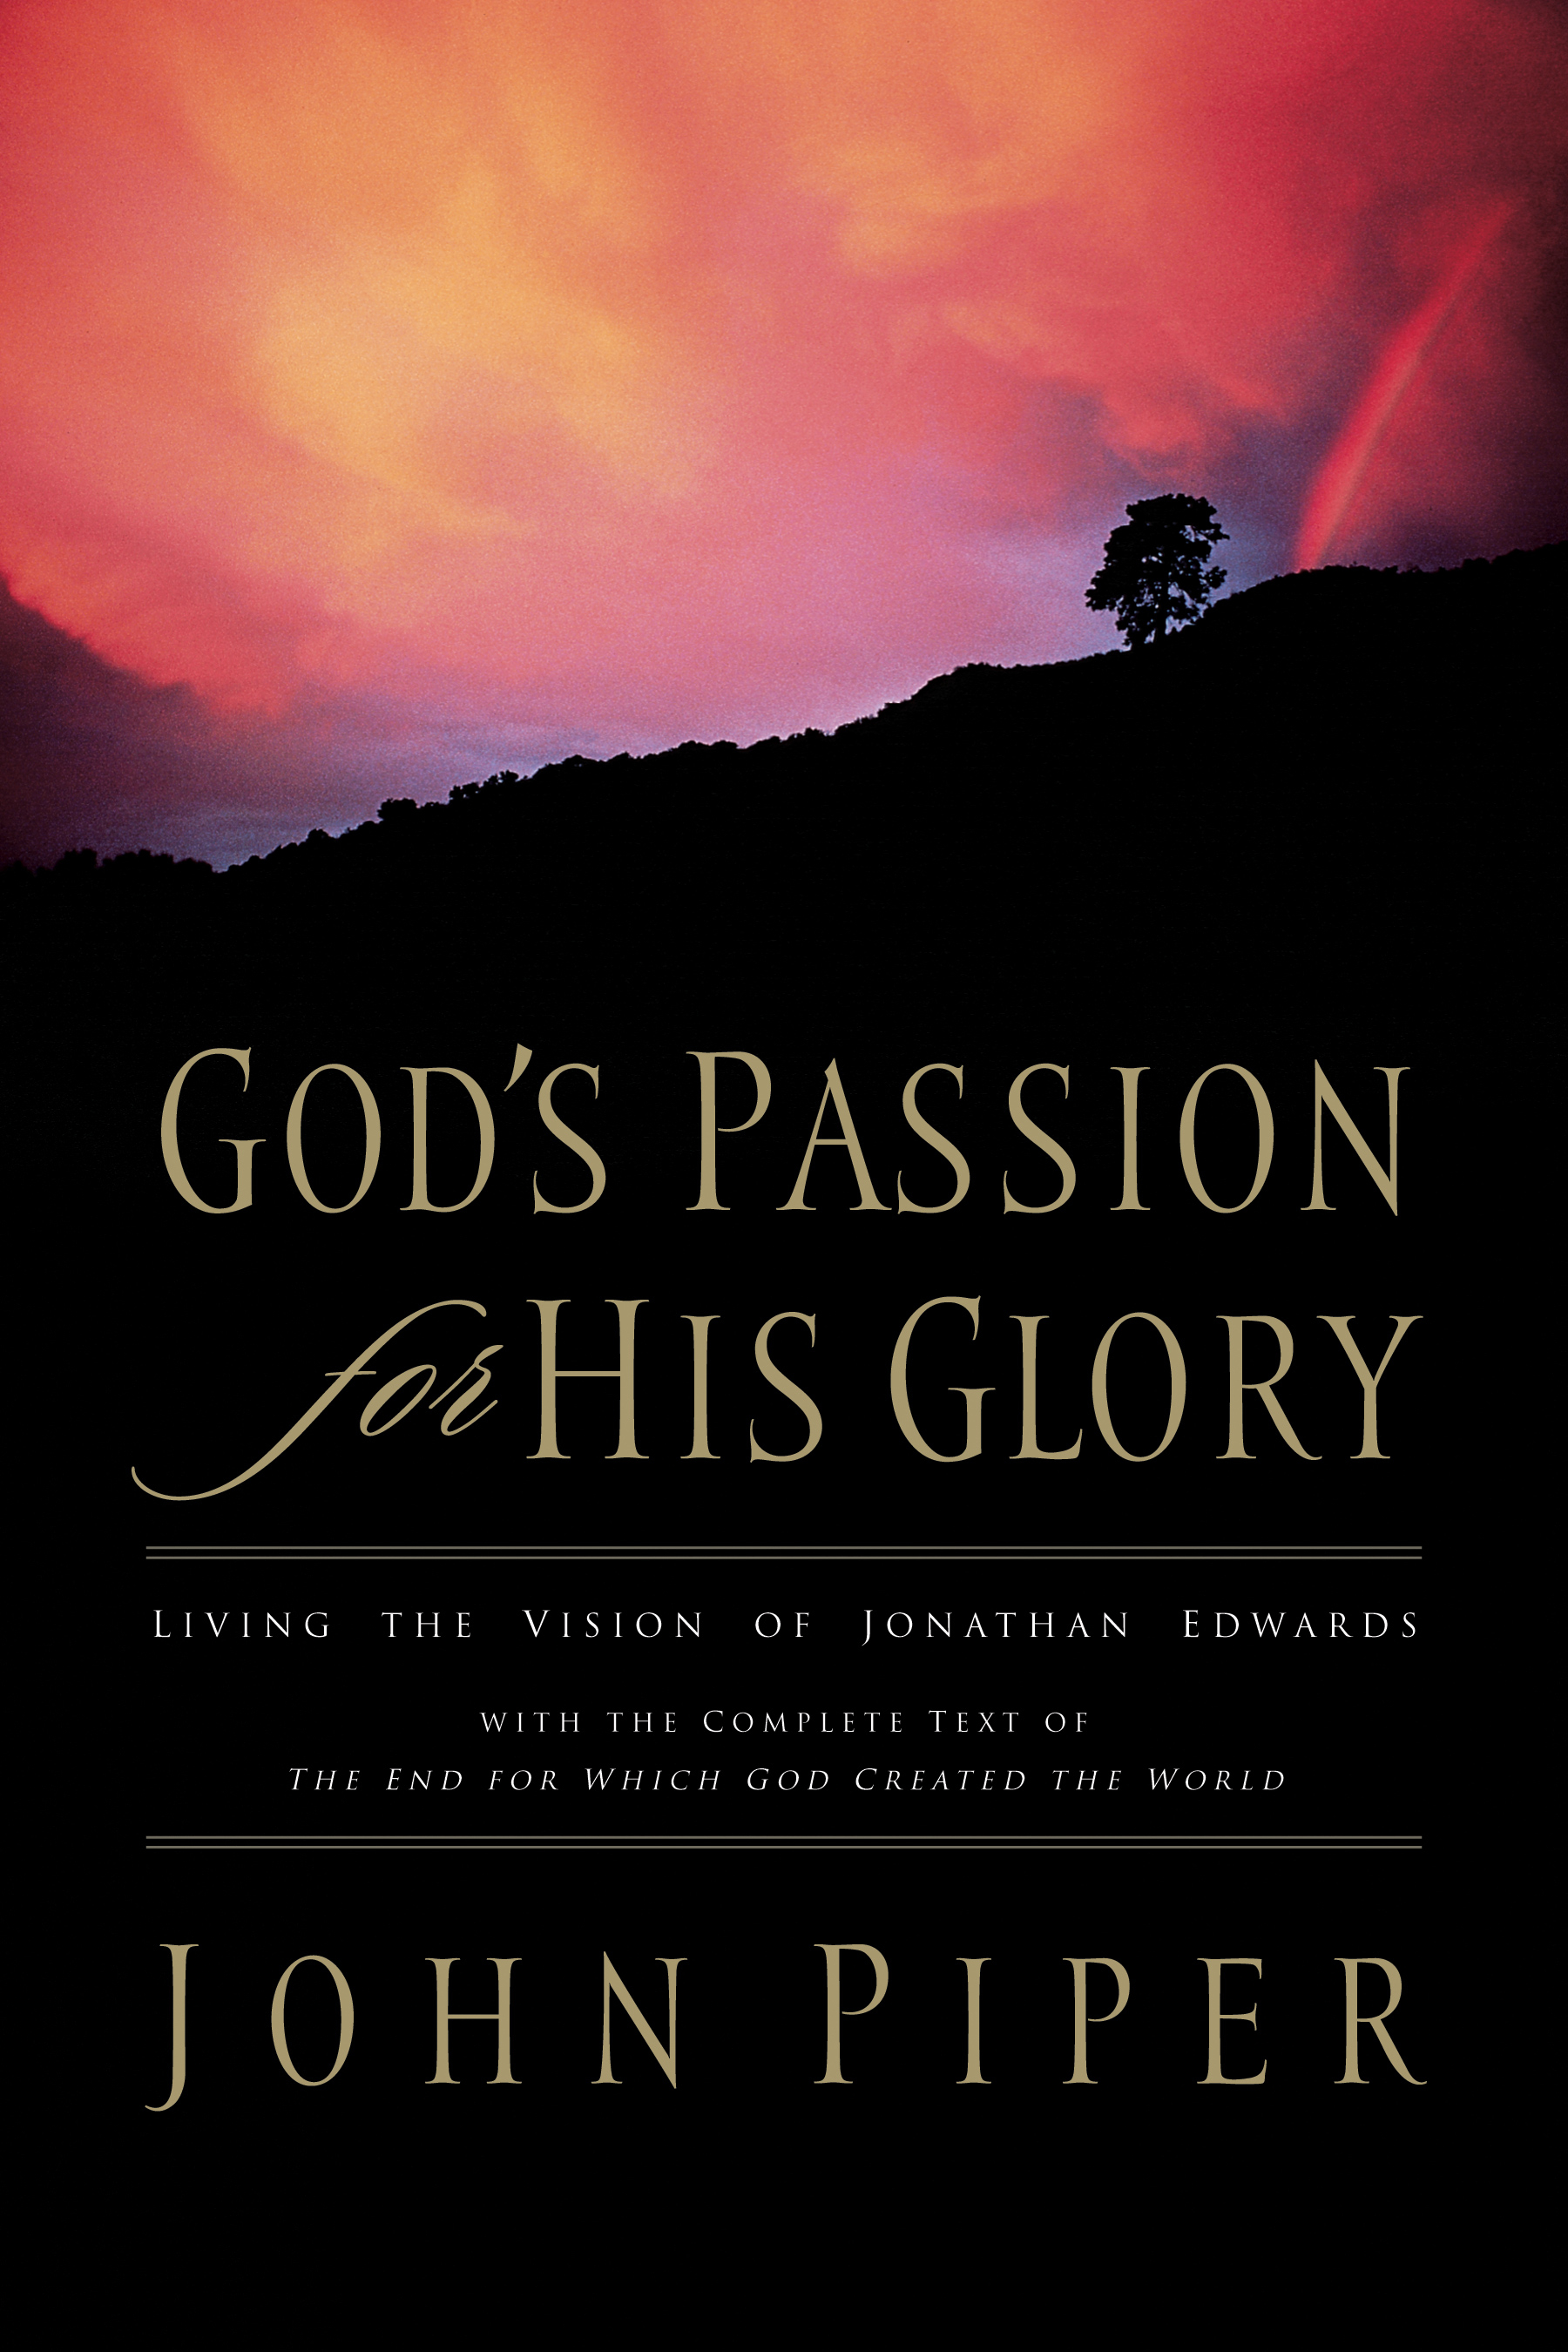 God's Passion for His Glory Living the Vision of Jonathan Edwards (With the Complete Text of The End for Which God Created the World)